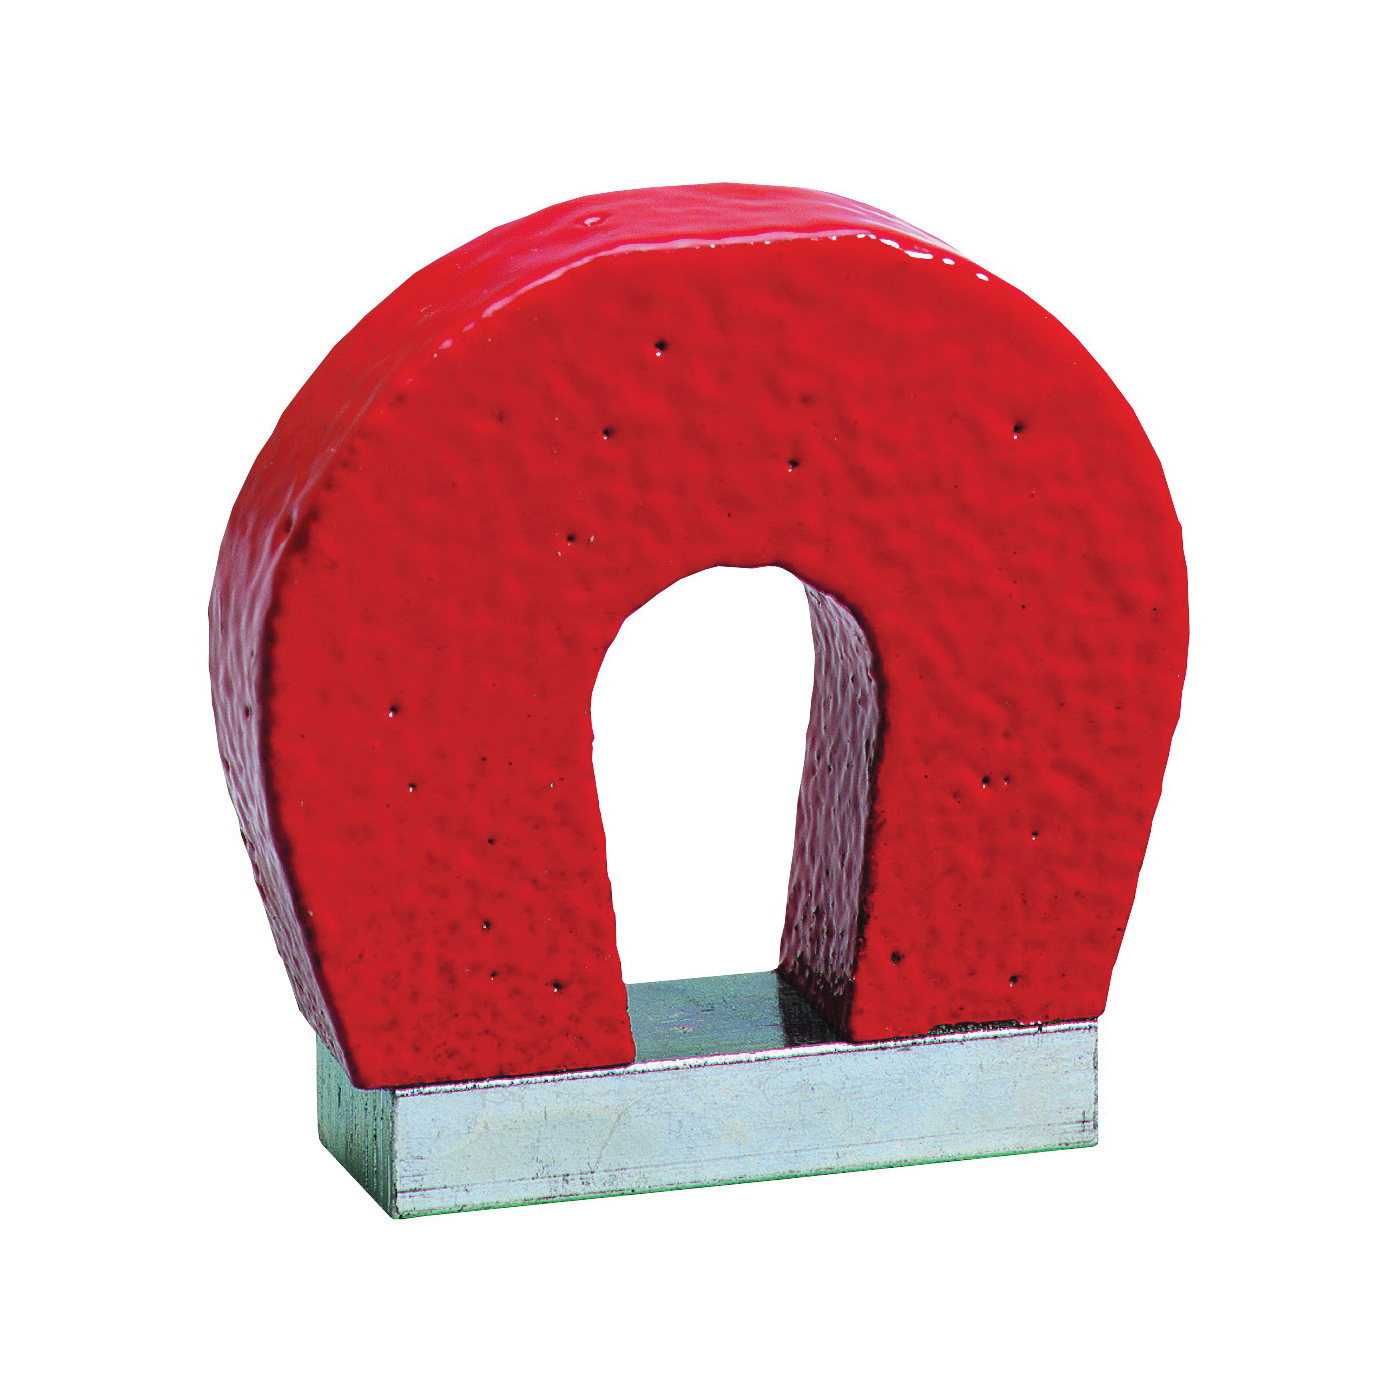 Picture of GENERAL 370-1 Horseshoe Magnet, 1-1/8 in W, 1 in H, Alnico